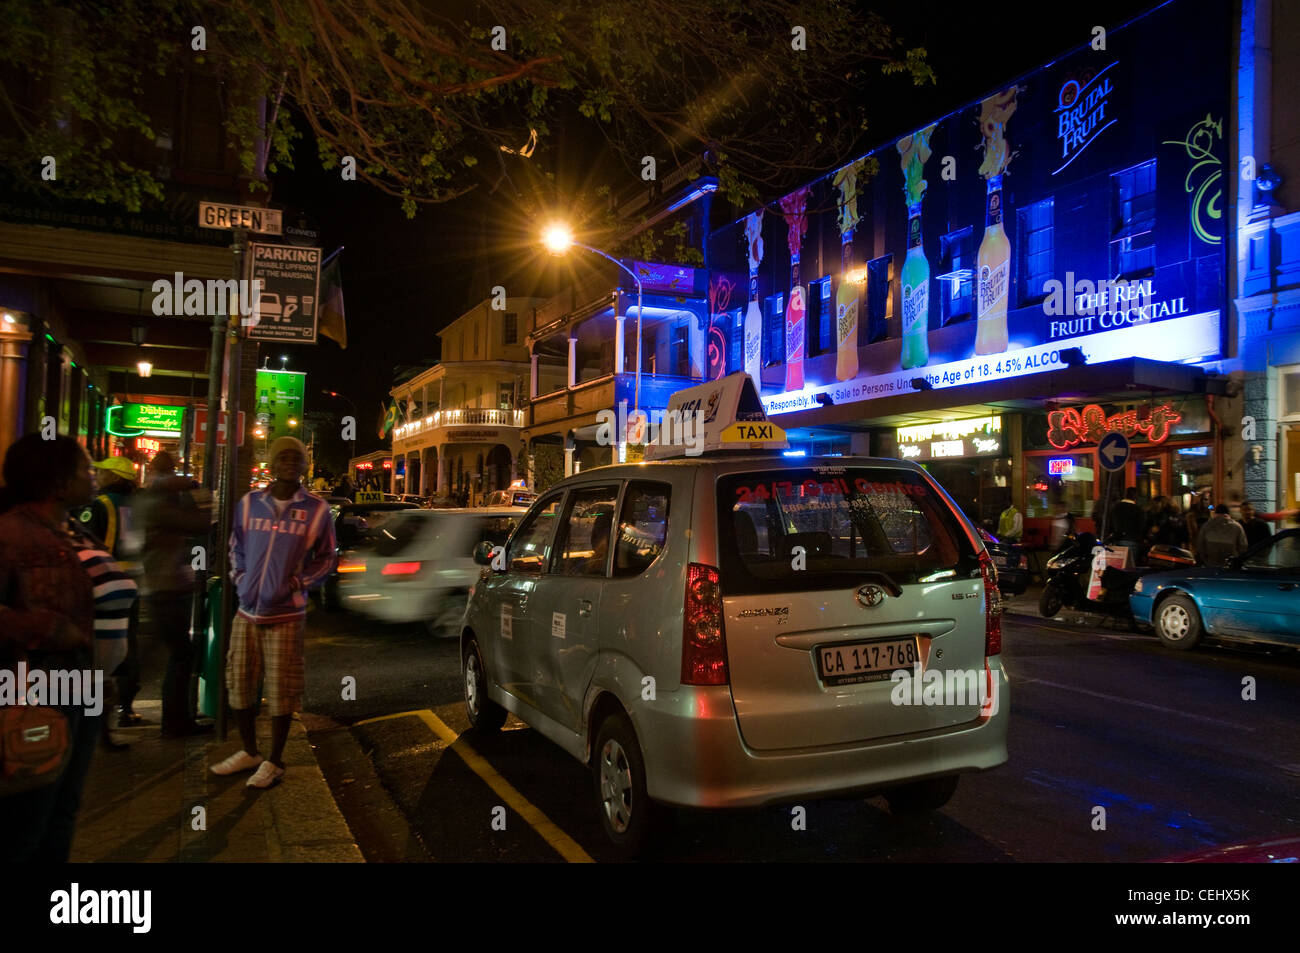 Long Street Nightlife,Cape Town,Western Cape Province - Stock Image